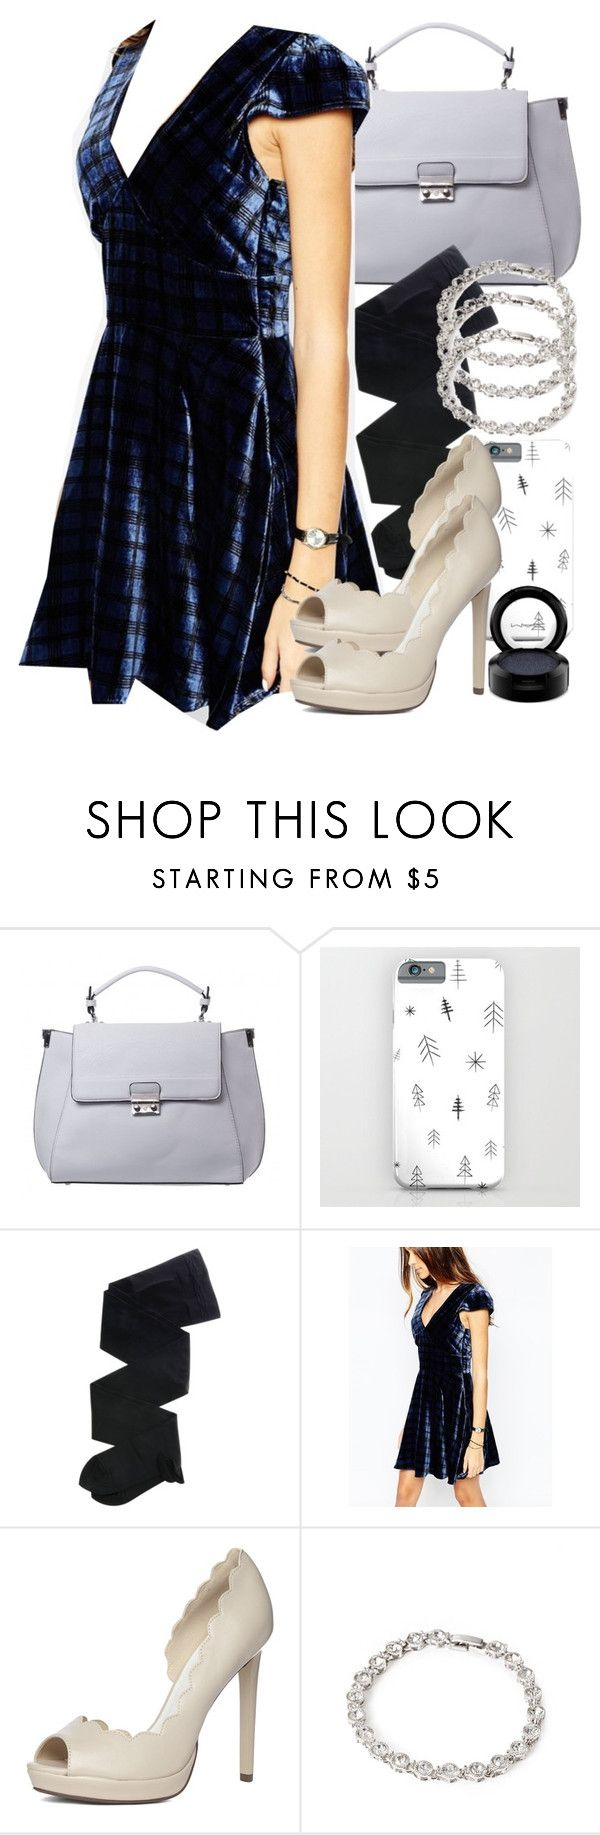 """Lydia Inspired Christmas Eve Dinner Outfit"" by veterization ❤ liked on Polyvore featuring Gerbe, Jack Wills, Dorothy Perkins, Forever 21 and MAC Cosmetics"